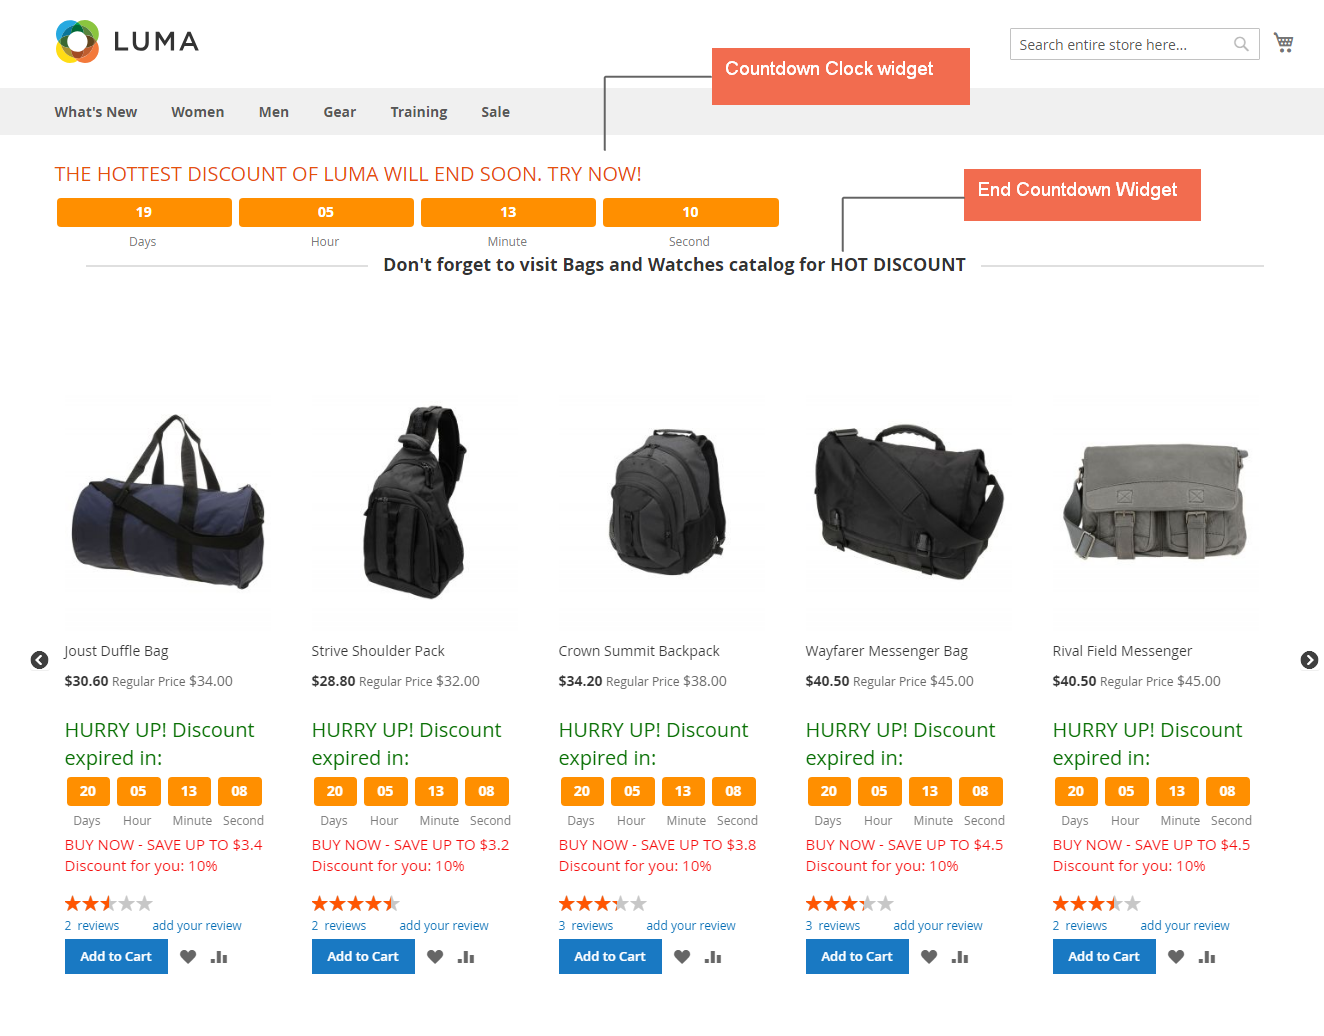 magento 2 special price countdown widget on home page